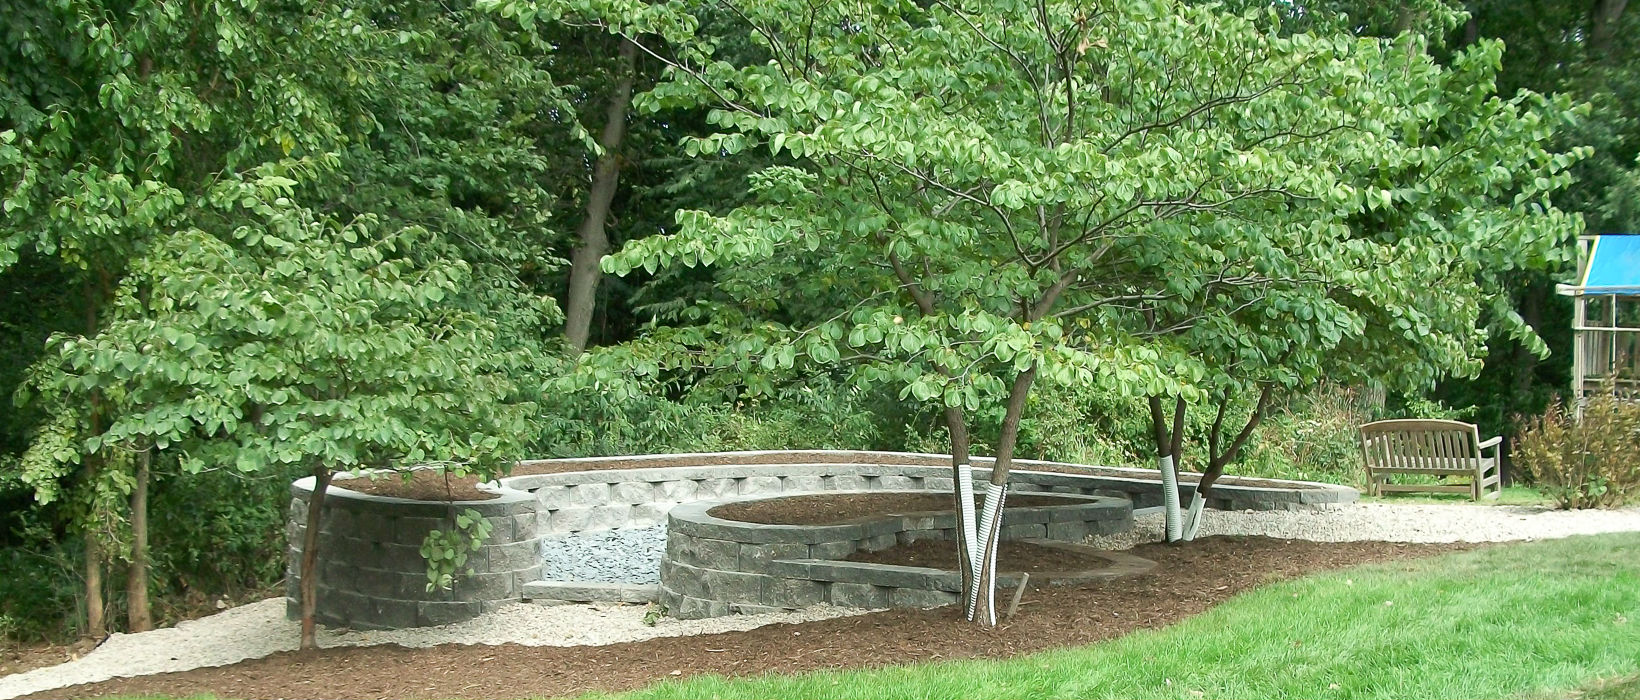 Retaining Walls - Landscaping Design | Forever Green ... on Green Wall Patio id=18814